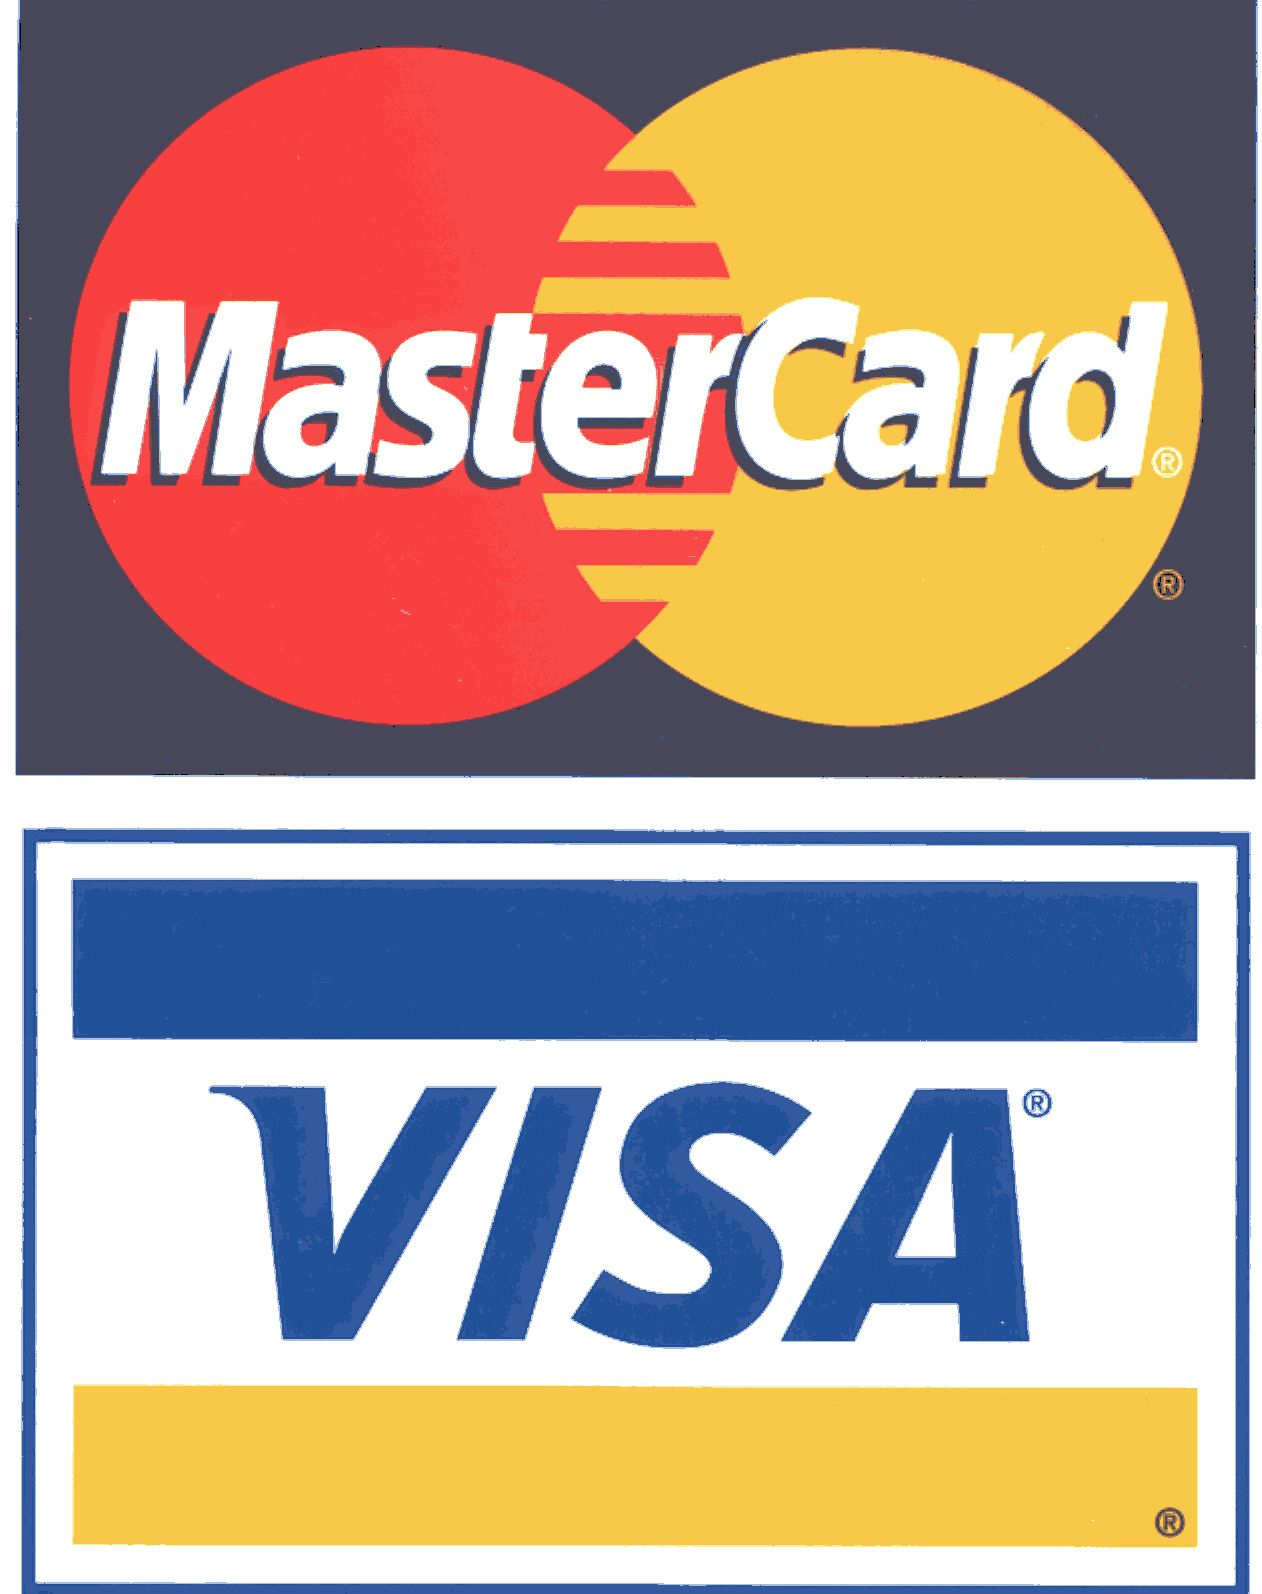 Leaked Credit Card Numbers 2015. Valid Credit Card Numbers With Cvv And Expiration Date 2015